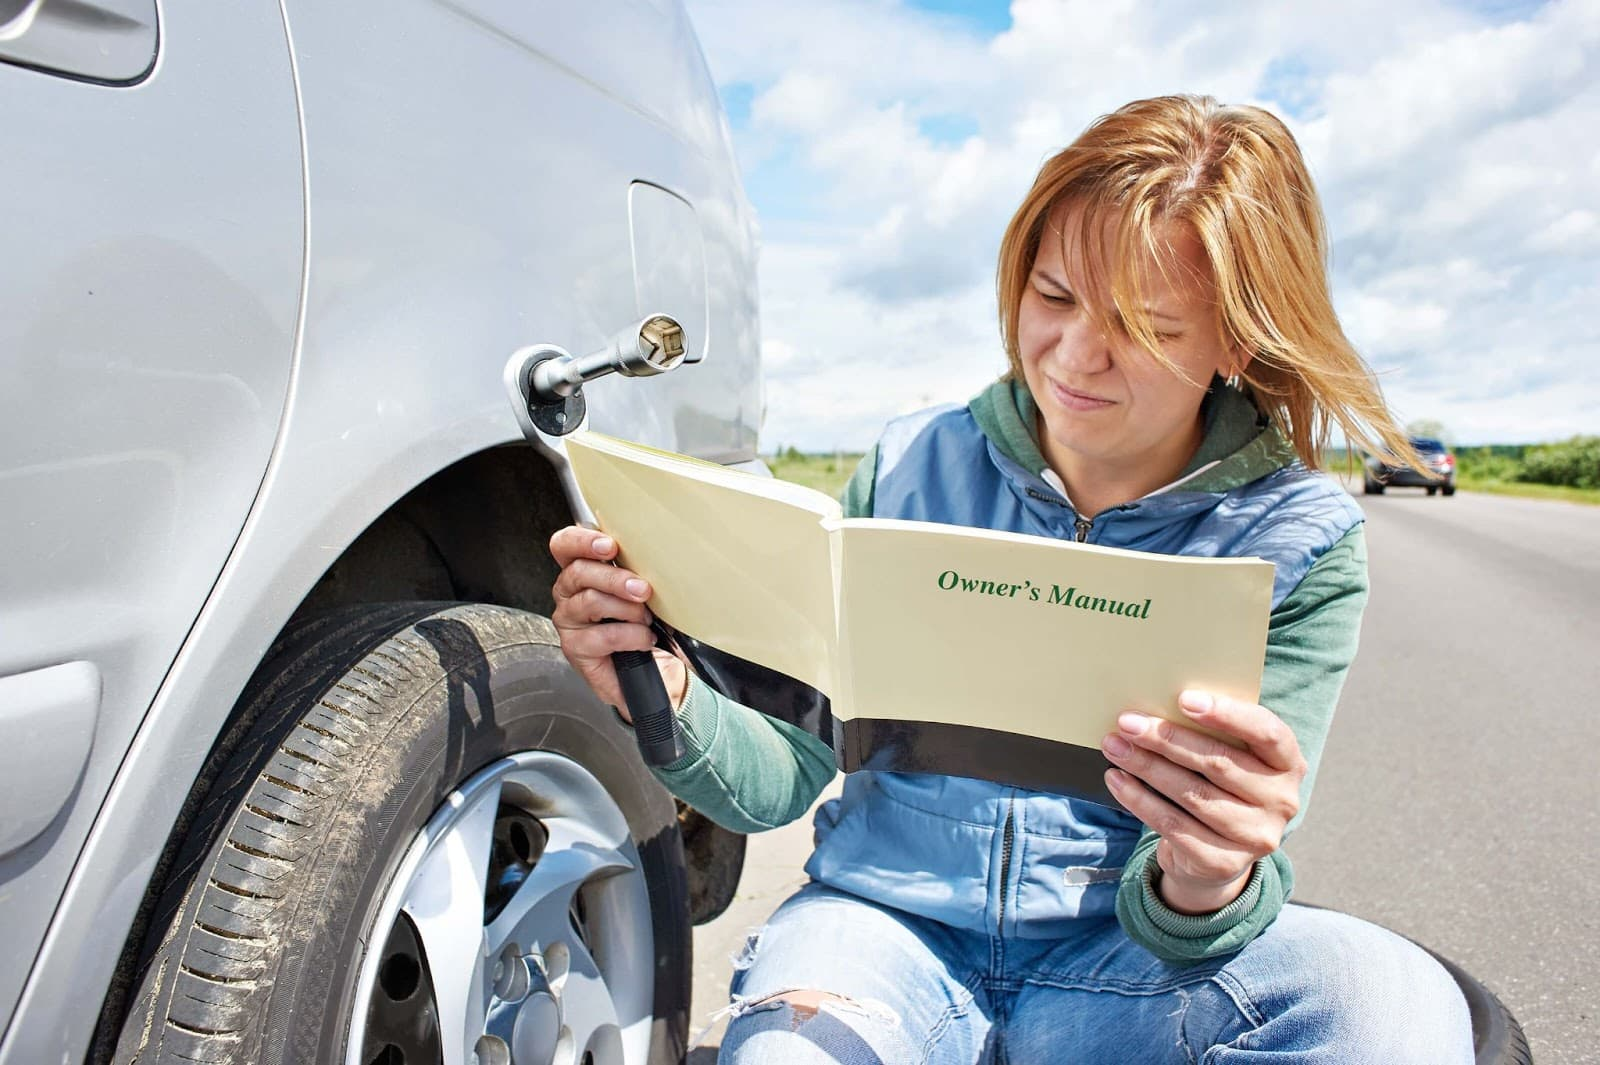 How To Reduce The Cost of Owning A Car